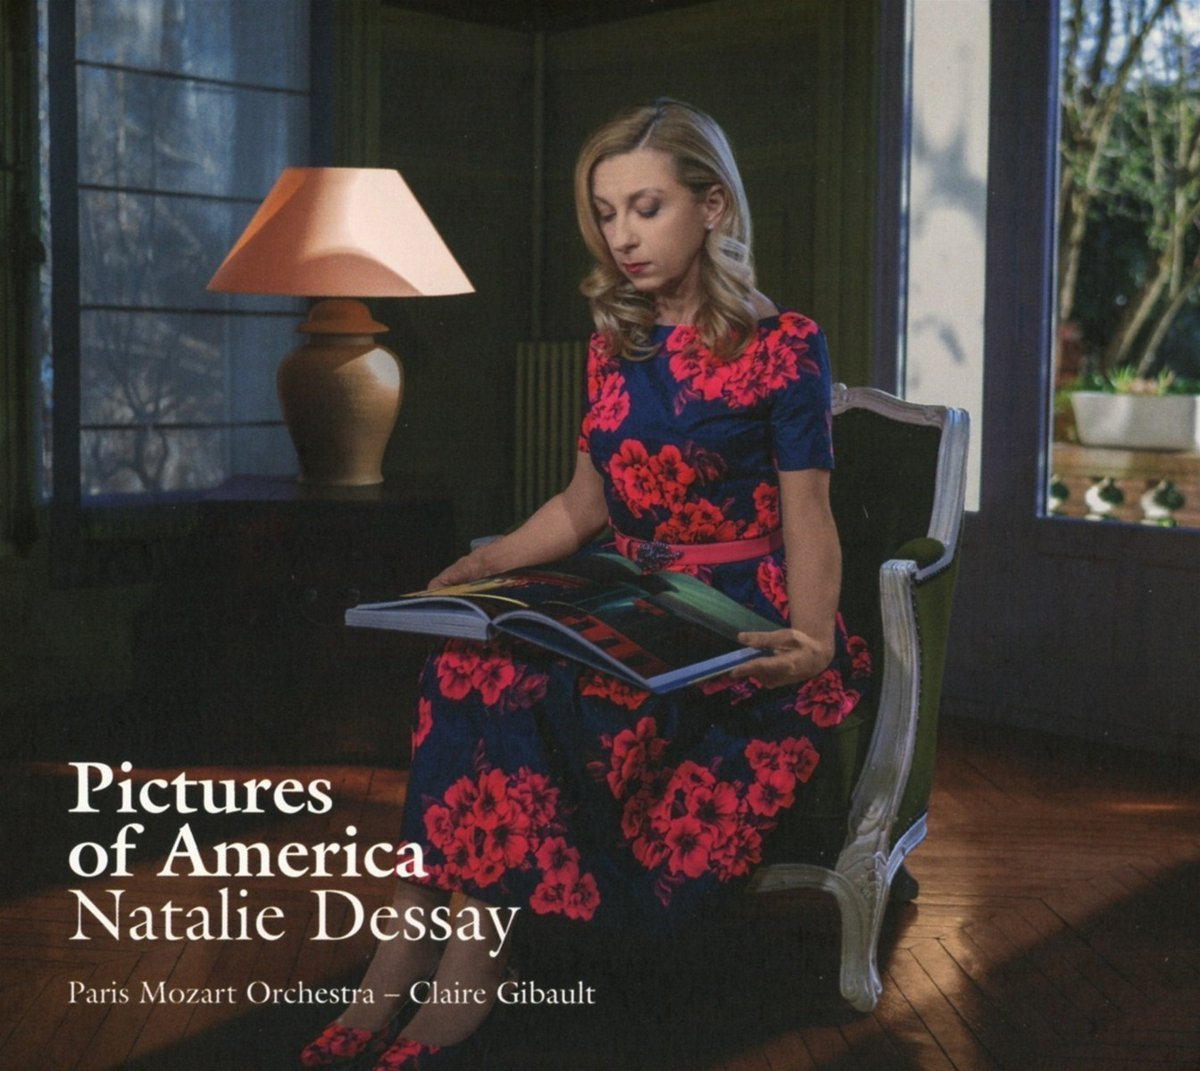 Pictures of America Natalie Dessay